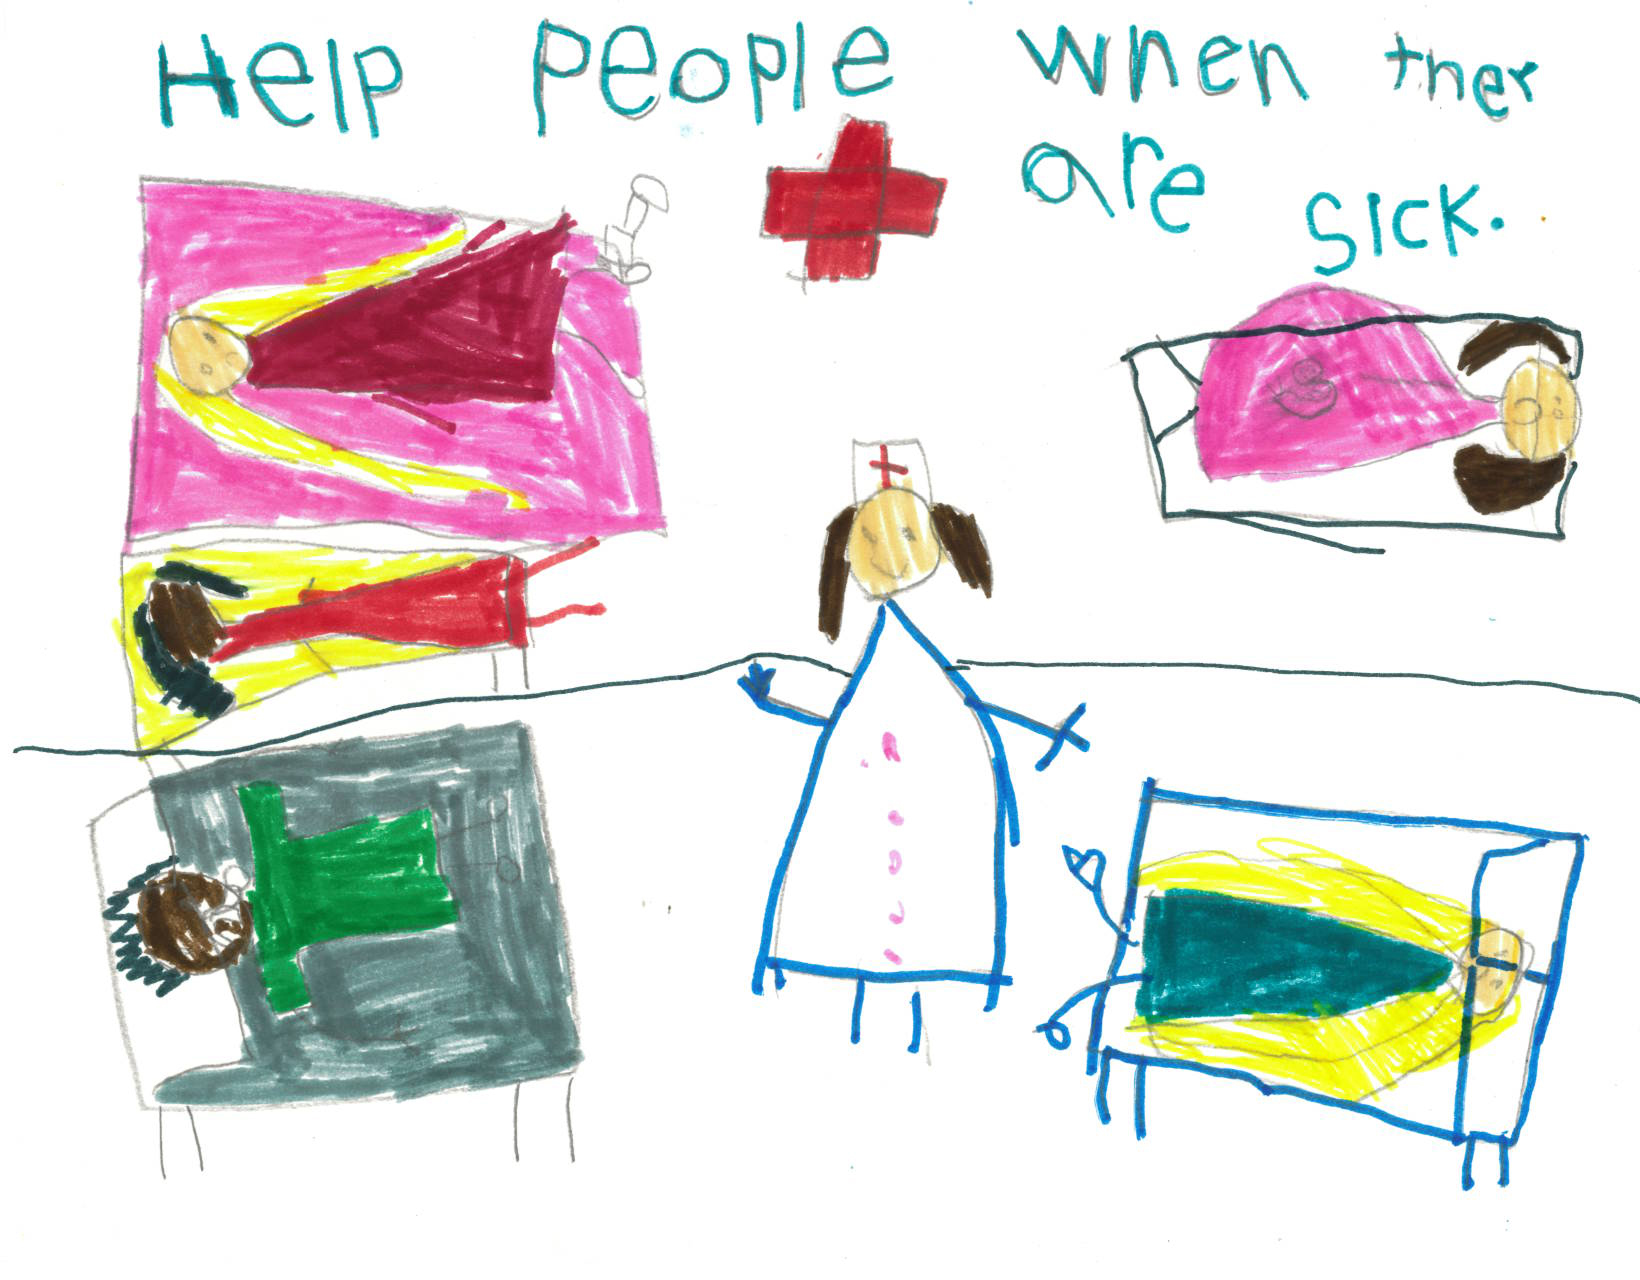 Children's drawing of a nurse surrounded byu patients in beds at a hospital.